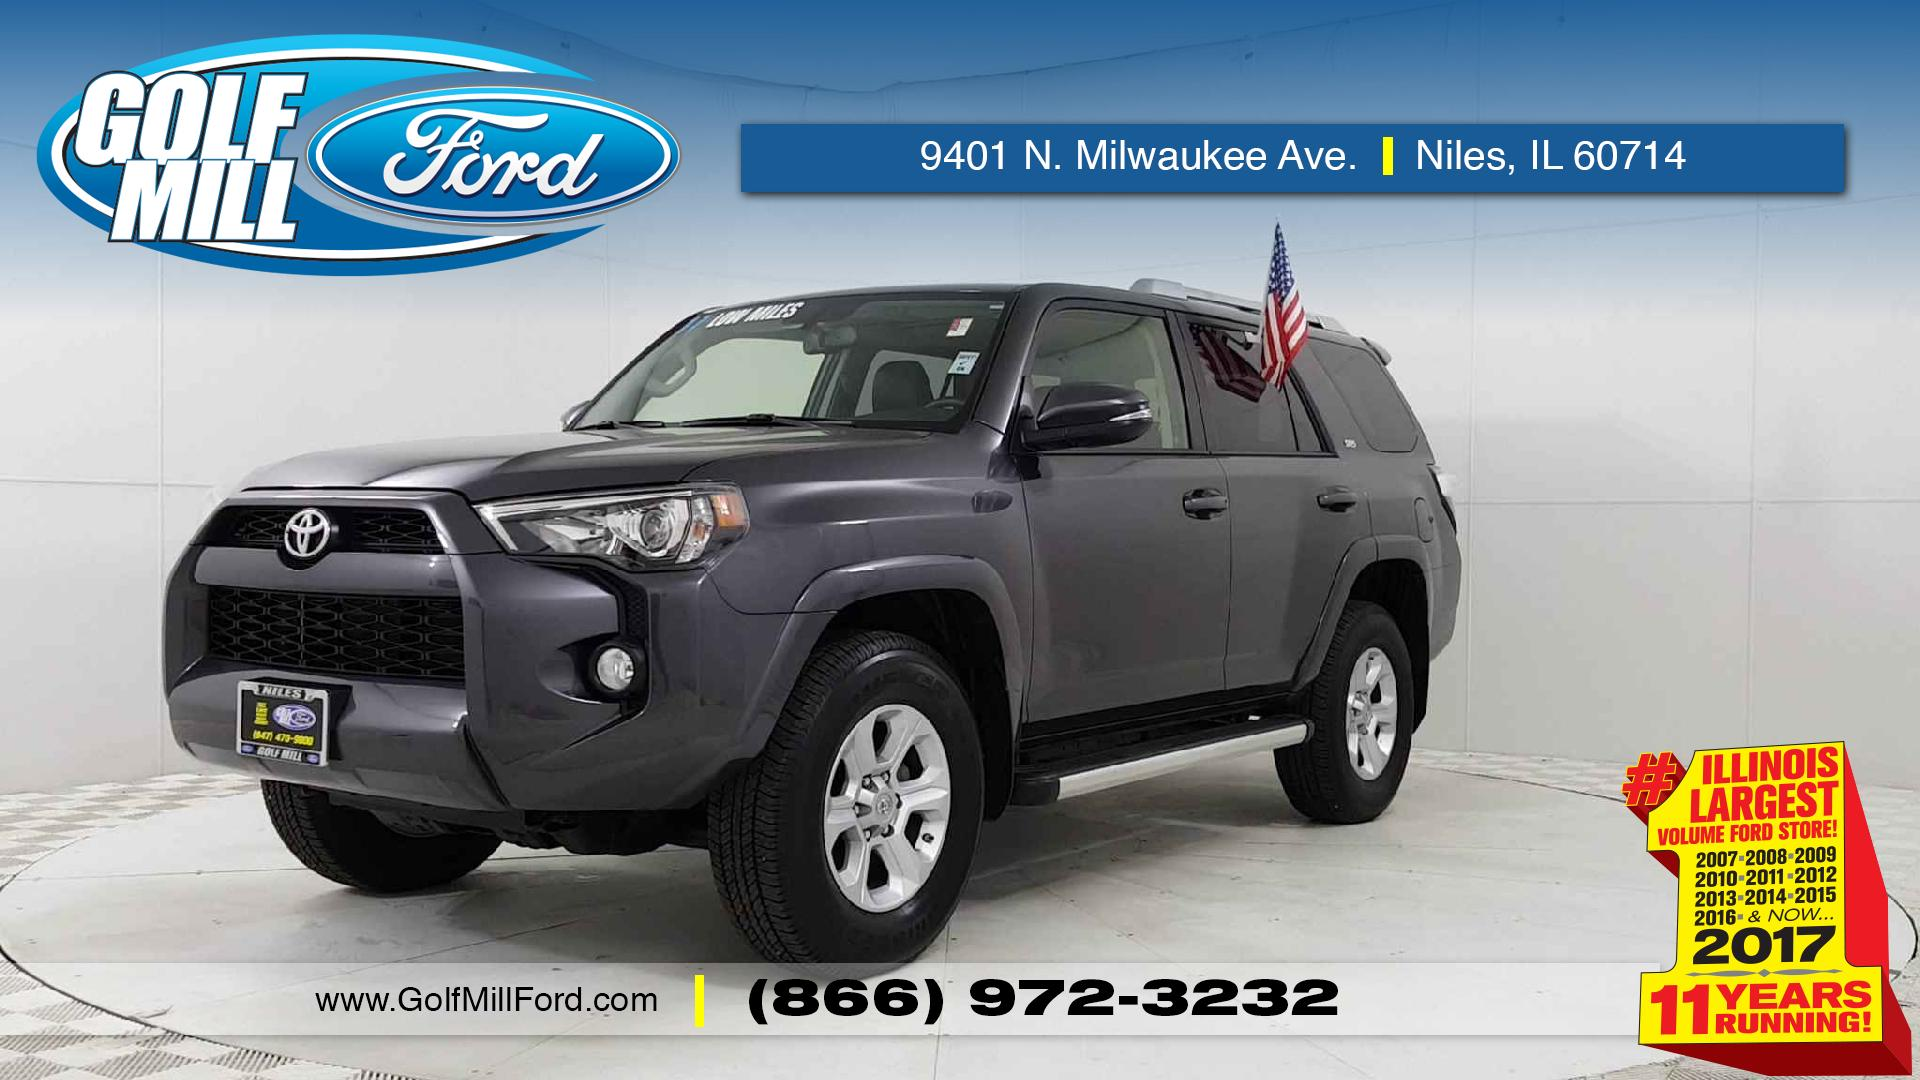 Used Toyota for Sale in Niles IL Golf Mill Ford